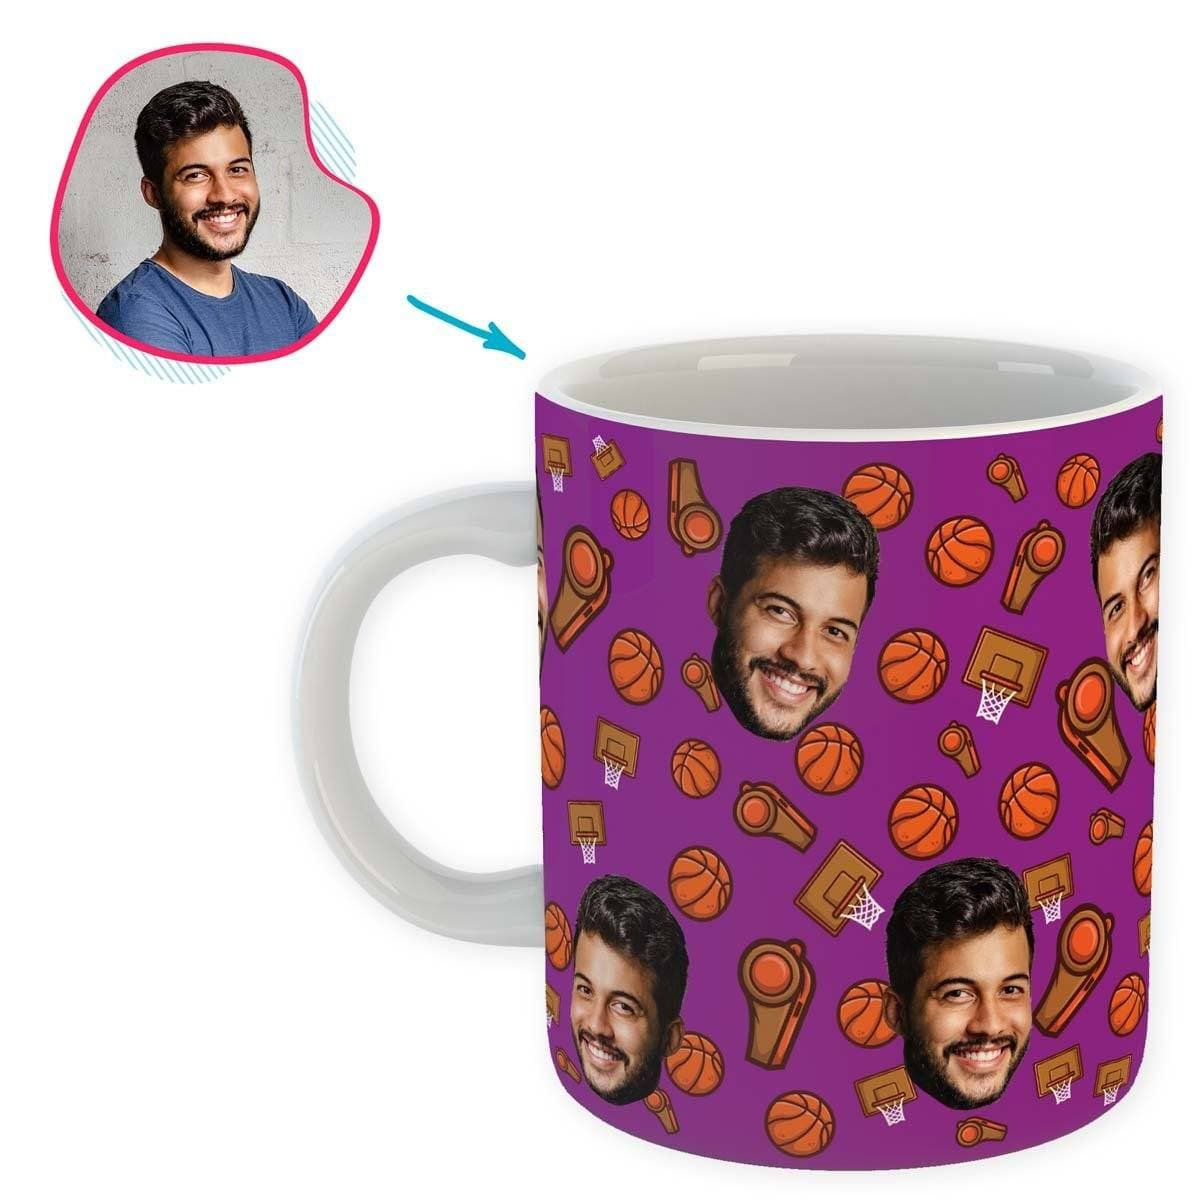 purple Basketball mug personalized with photo of face printed on it